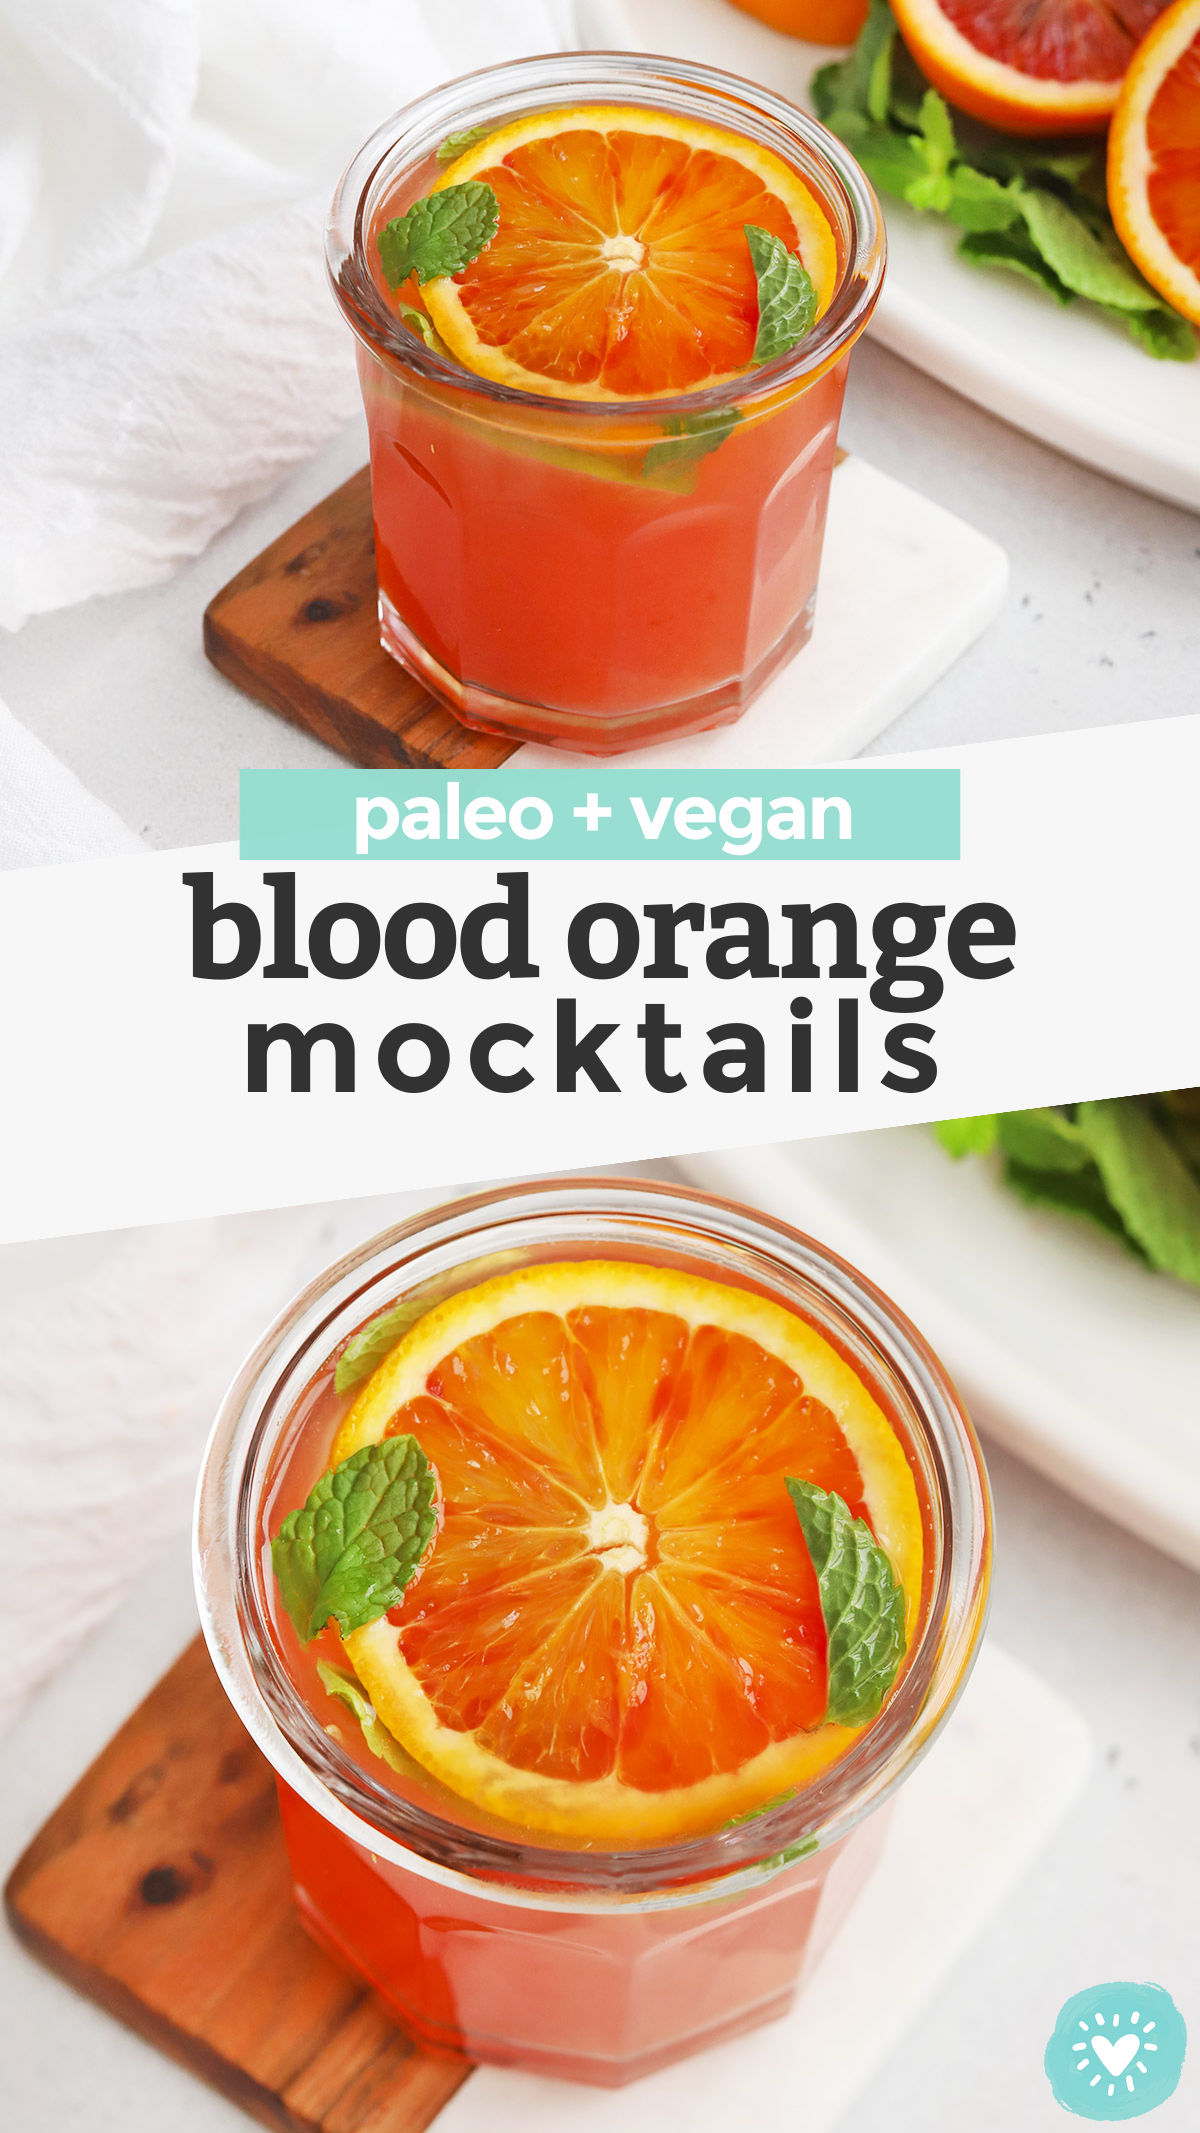 Blood Orange Mocktail - these naturally sweetened citrus mocktails are perfect for the holidays. Make the most of citrus season with these gorgeous non-alcoholic blood orange cocktails! (Paleo + Vegan!) // Holiday Mocktail // Winter Mocktail // New Year's Eve Mocktail // Citrus Mocktail Recipe // Paleo Mocktail // Vegan Mocktail // Non-Alcoholic Blood Orange Cocktail #mocktail